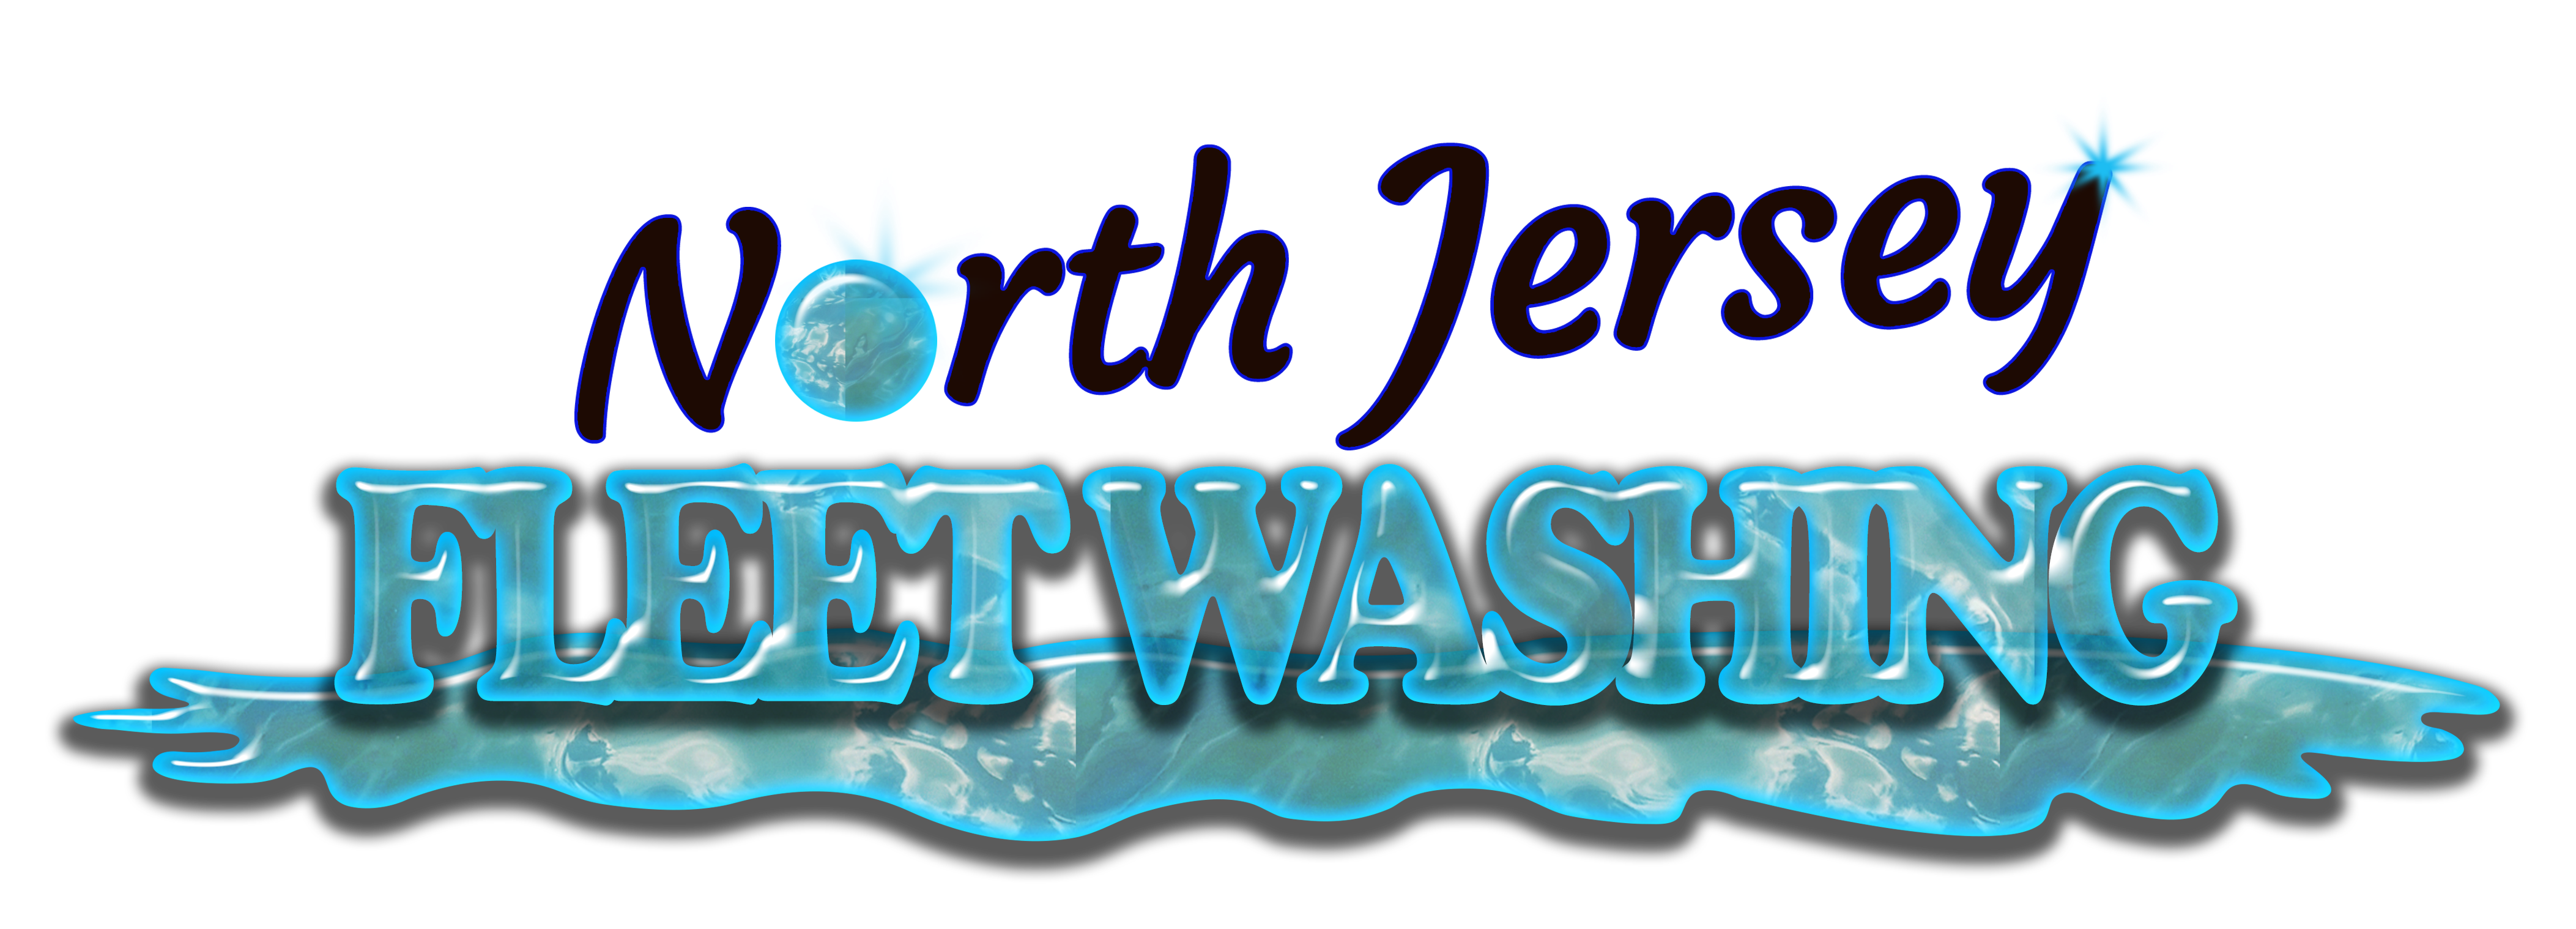 North Jersey Fleet Washing